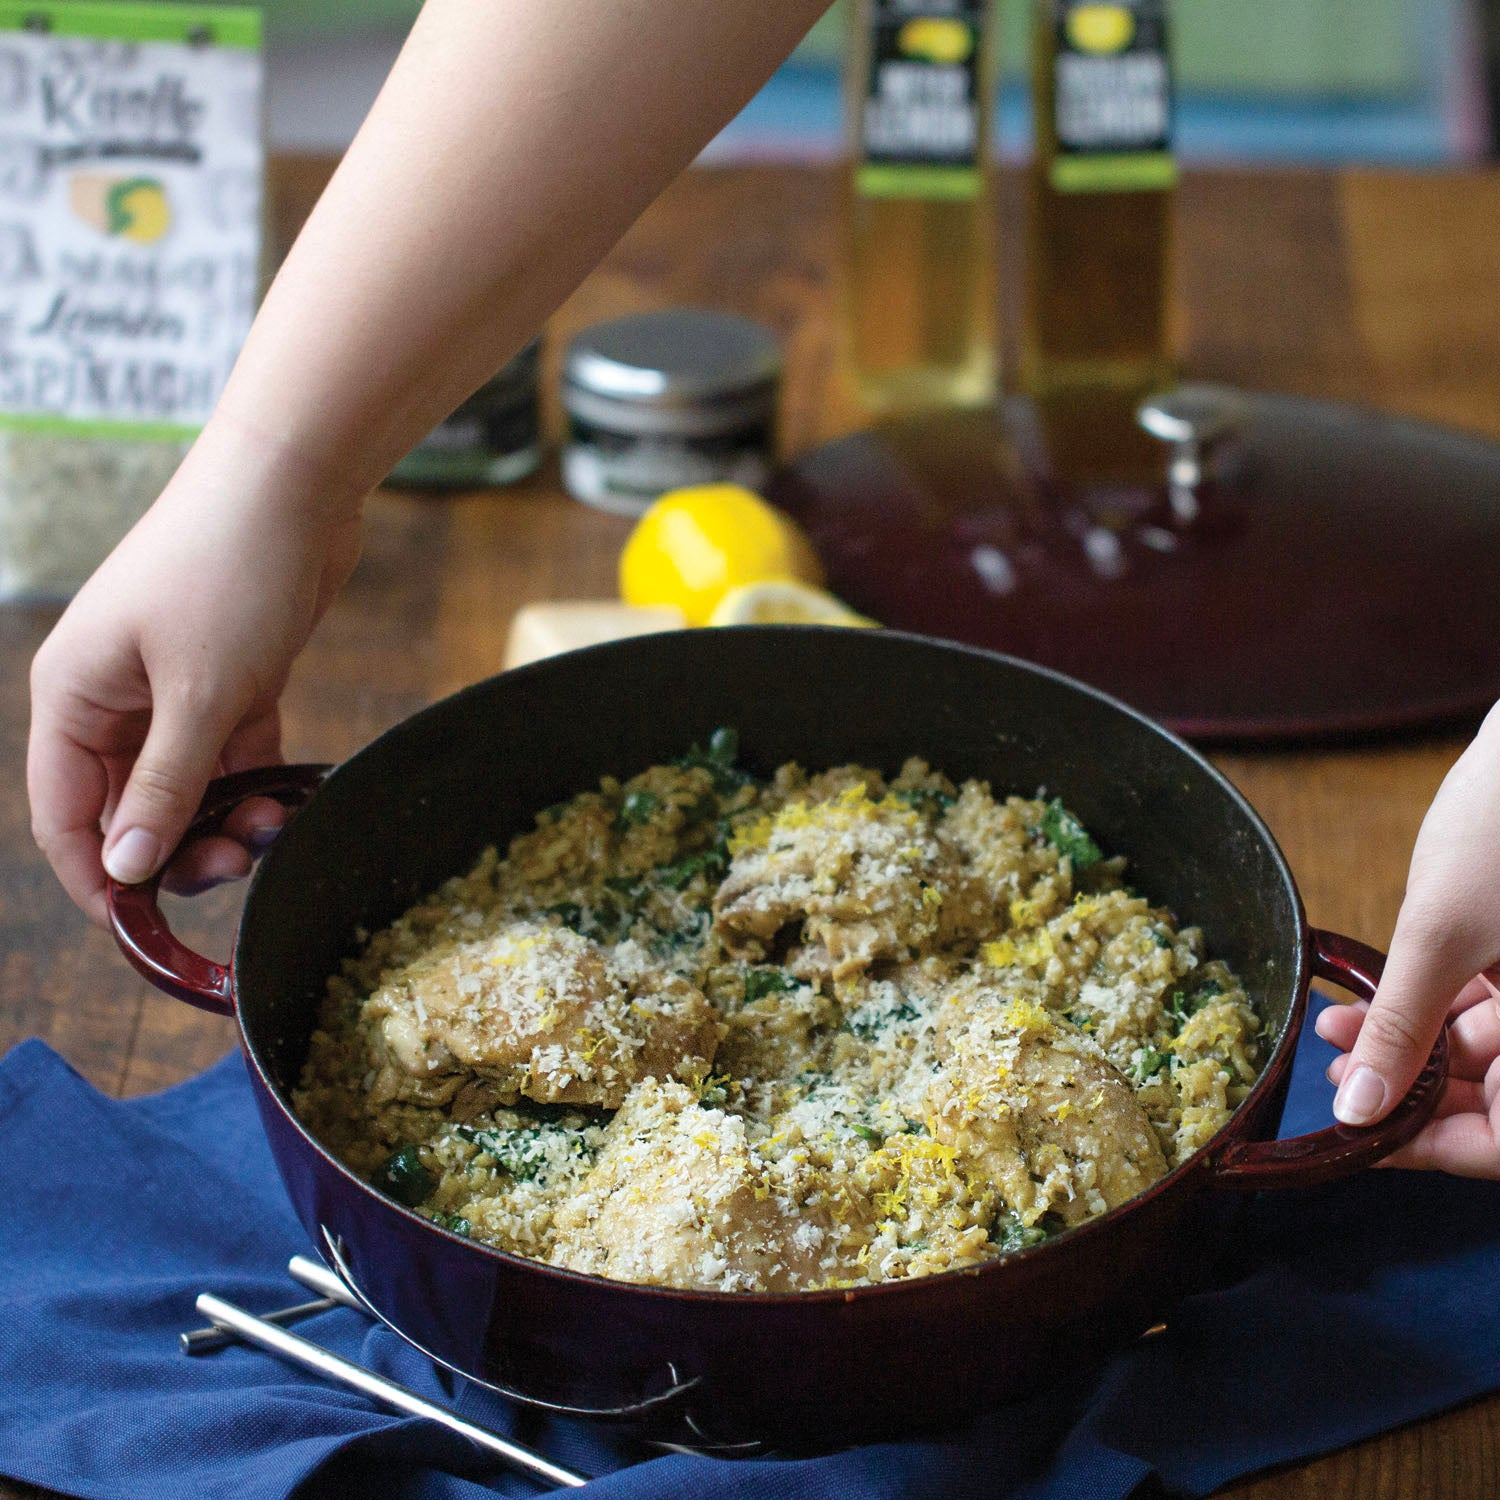 Asiago Lemon Spinach Risotto with Braised Chicken Thighs